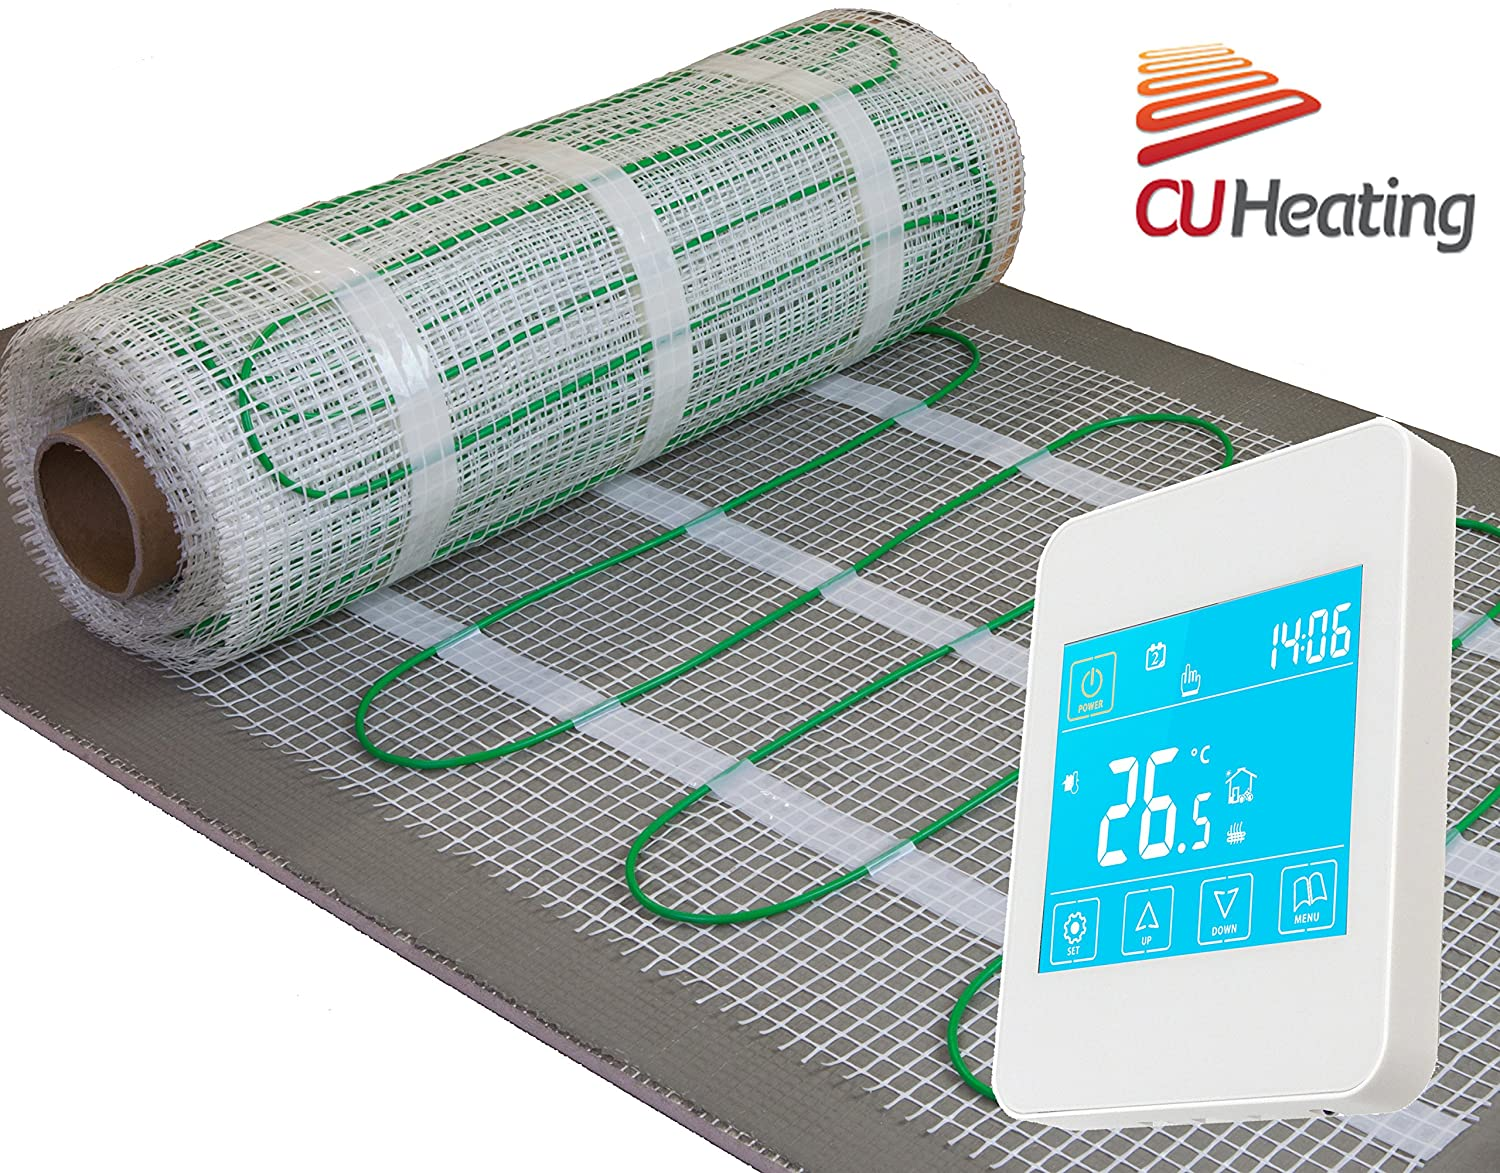 Electric underfloor heating Kit, 160W/m2 with touch screen thermostat **ALL SIZES** LIFE TIME WARRANTY! CU Heating